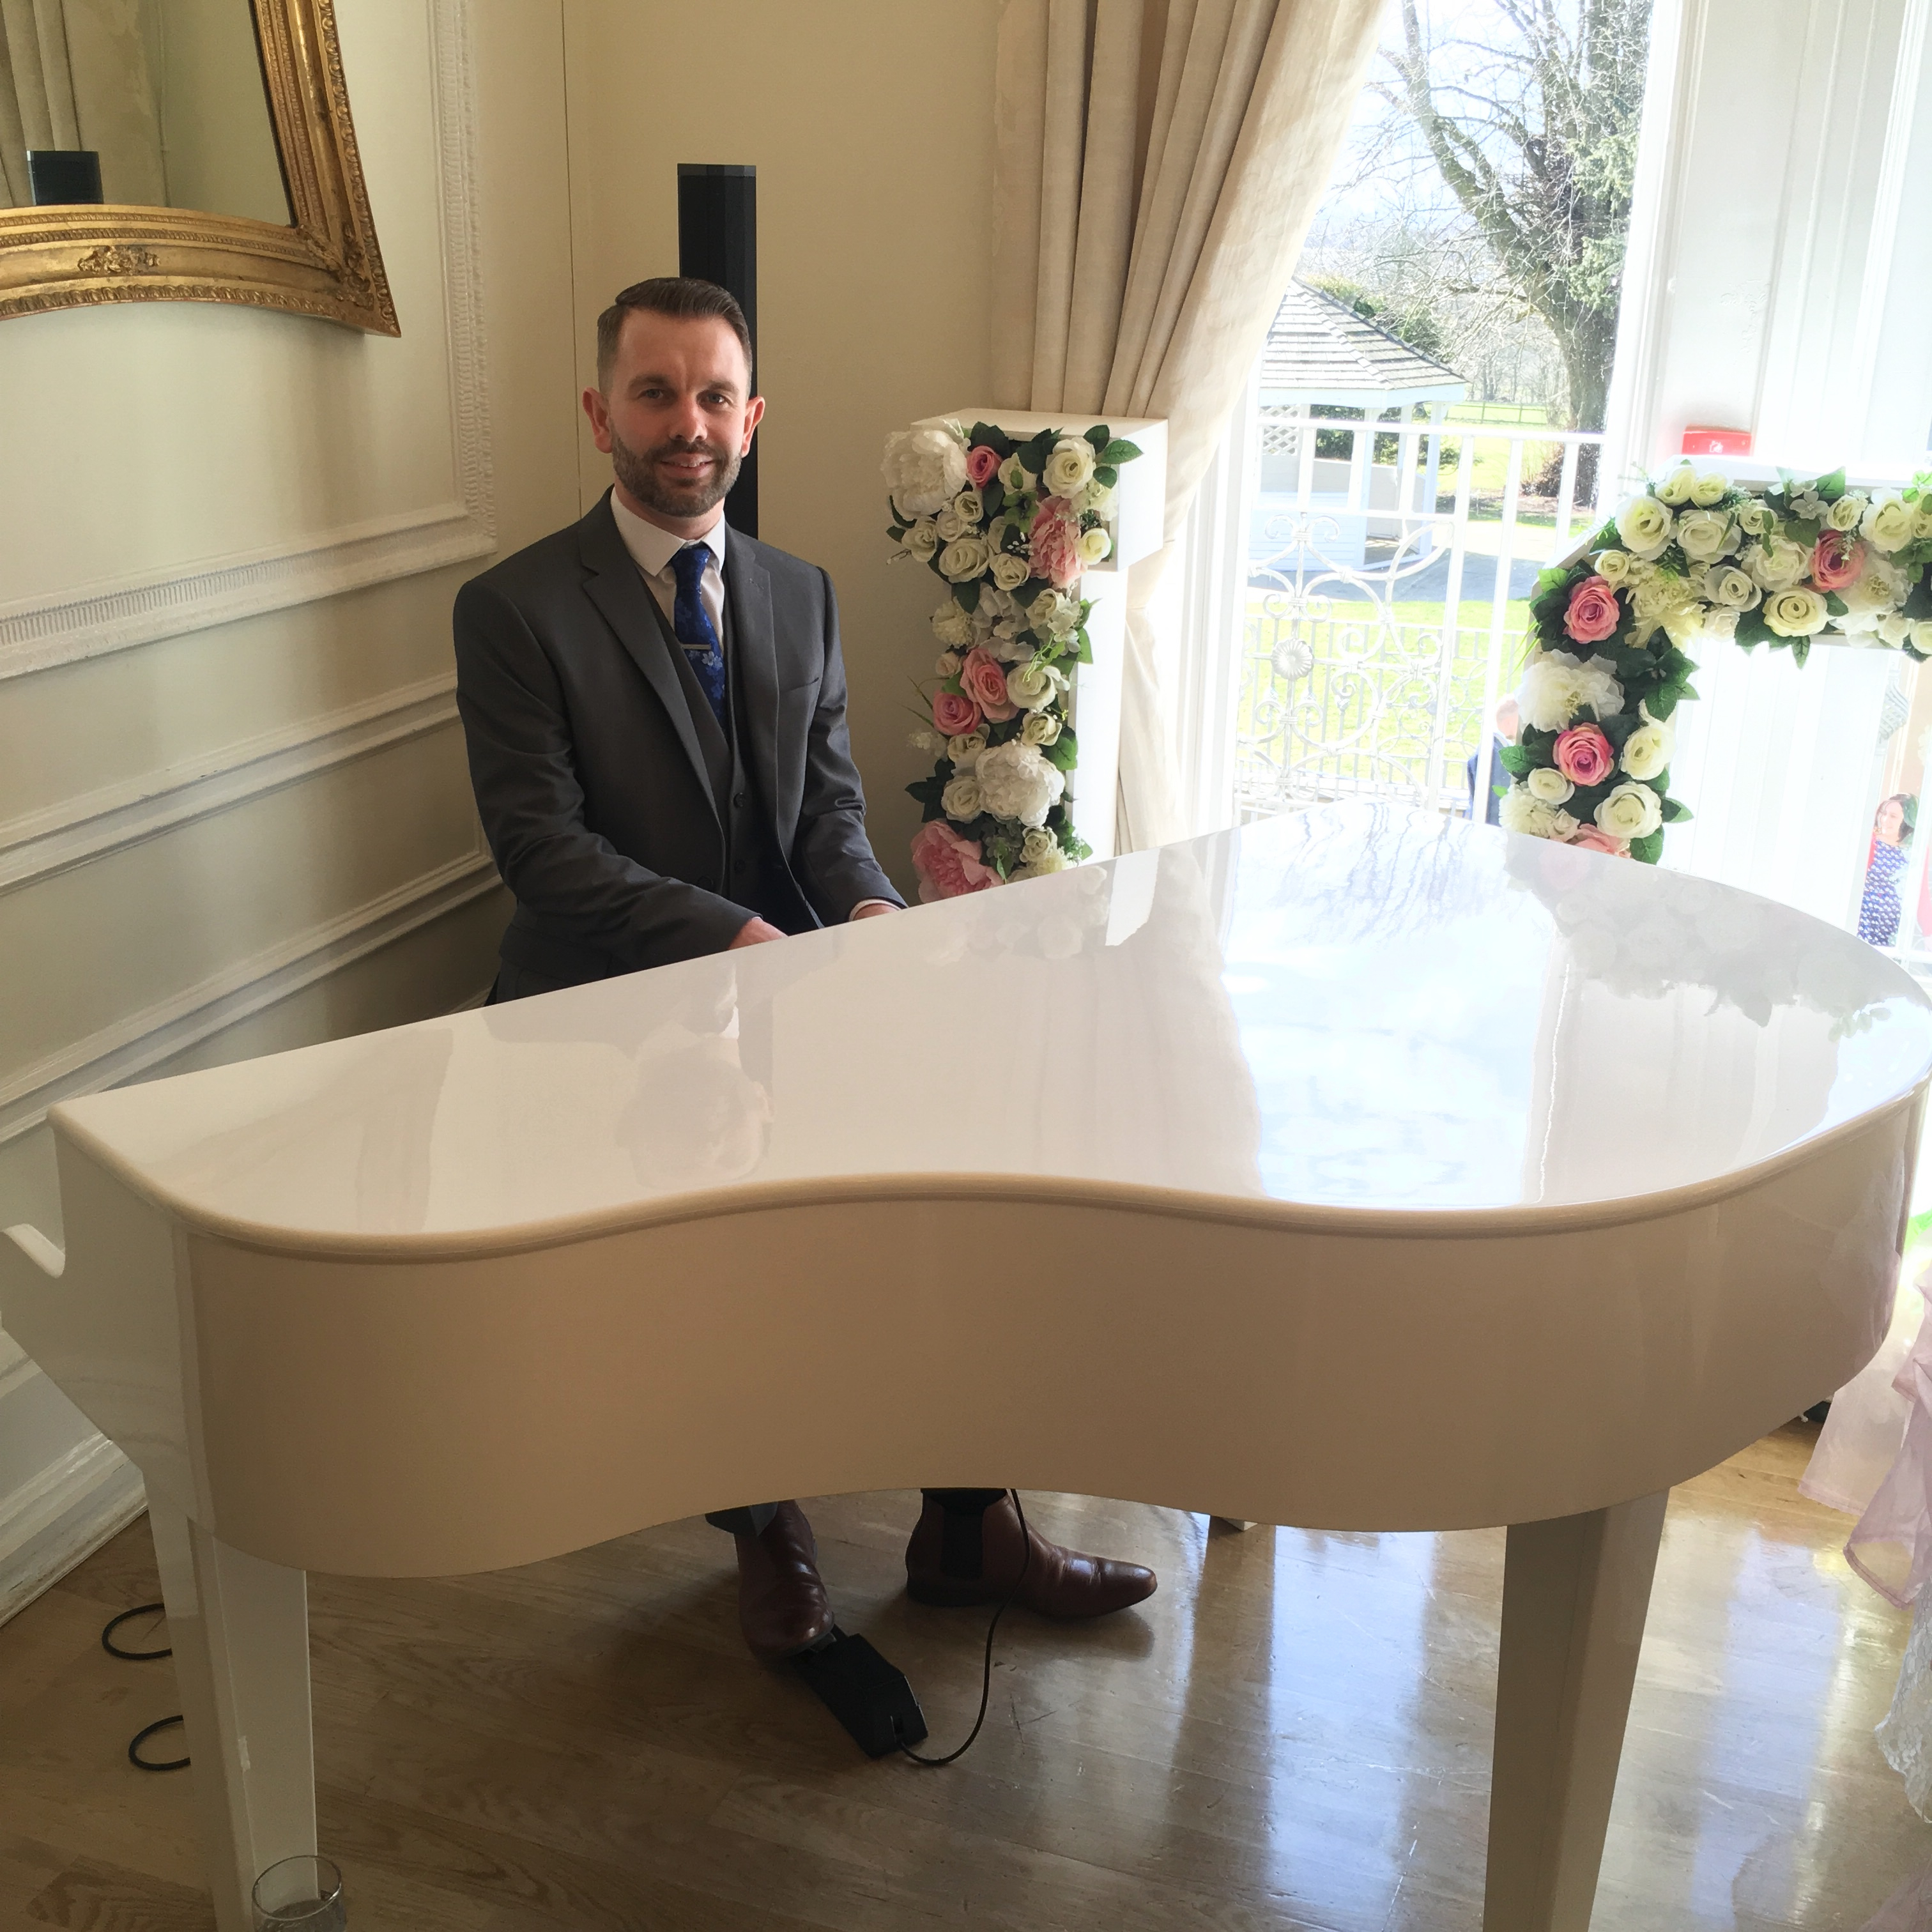 Piano player for West Tower wedding ceremony